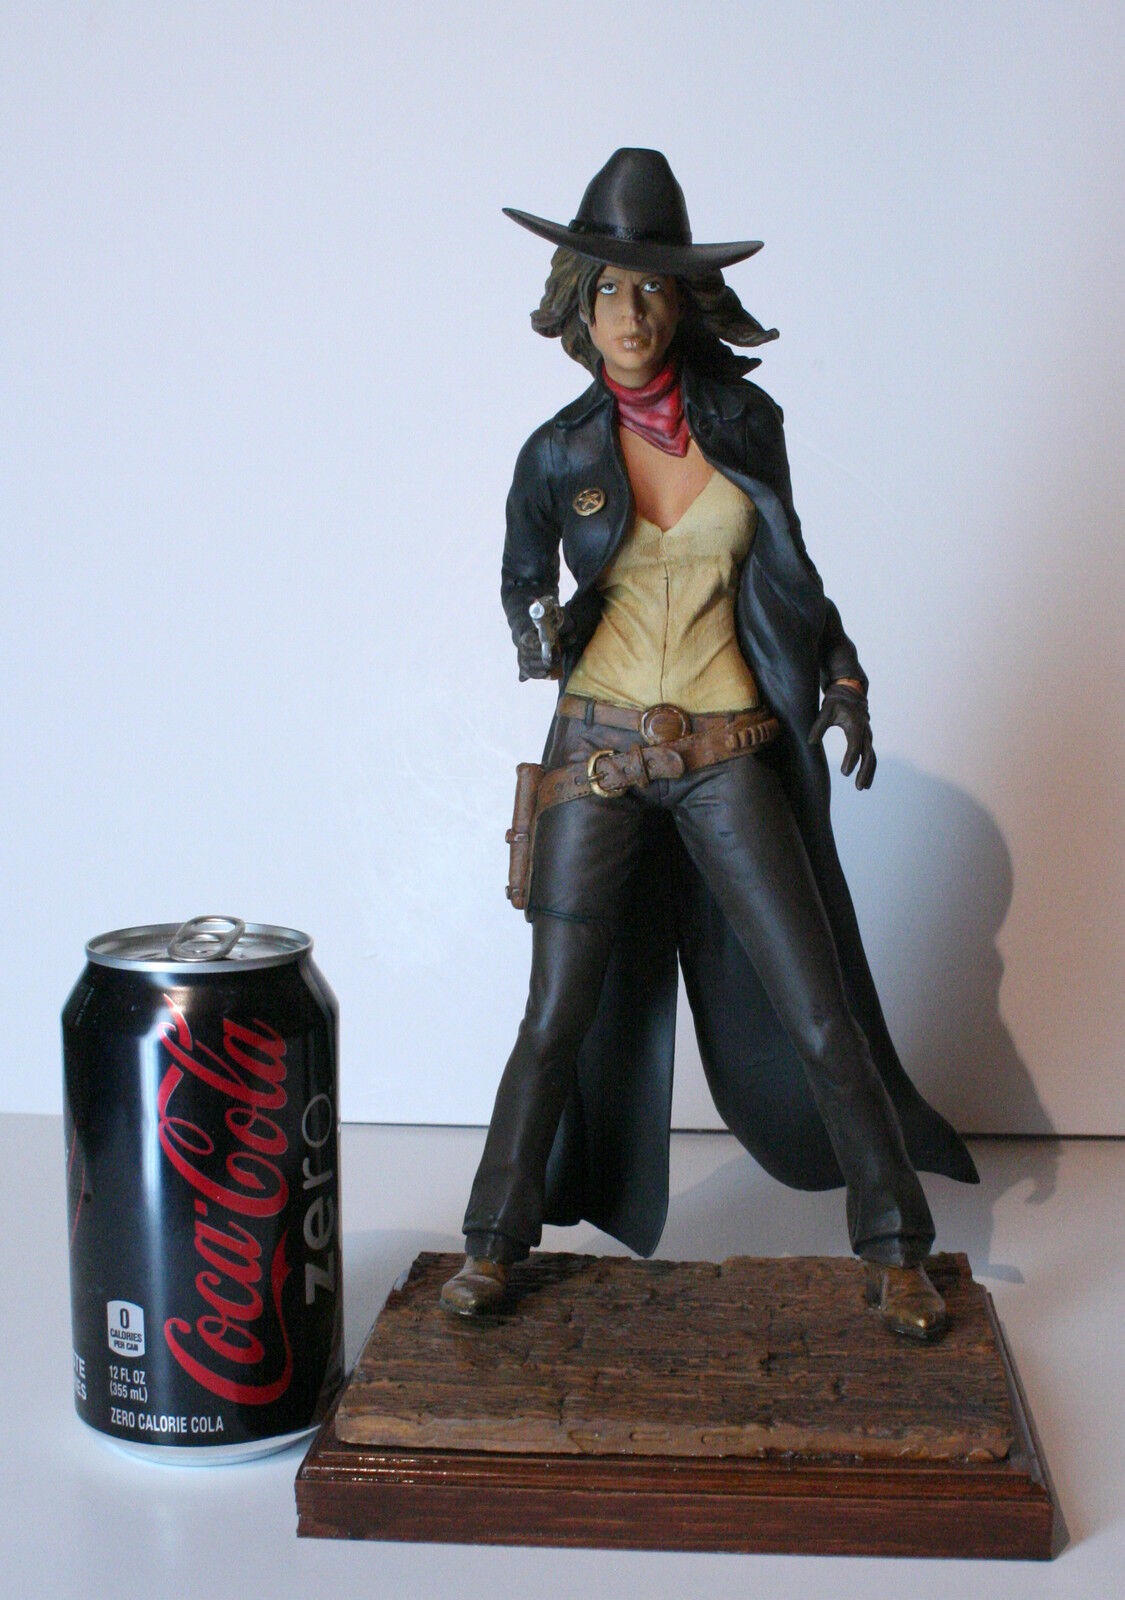 1 6 Resin Model Kit, Sexy action figure Cowgirl Sheriff